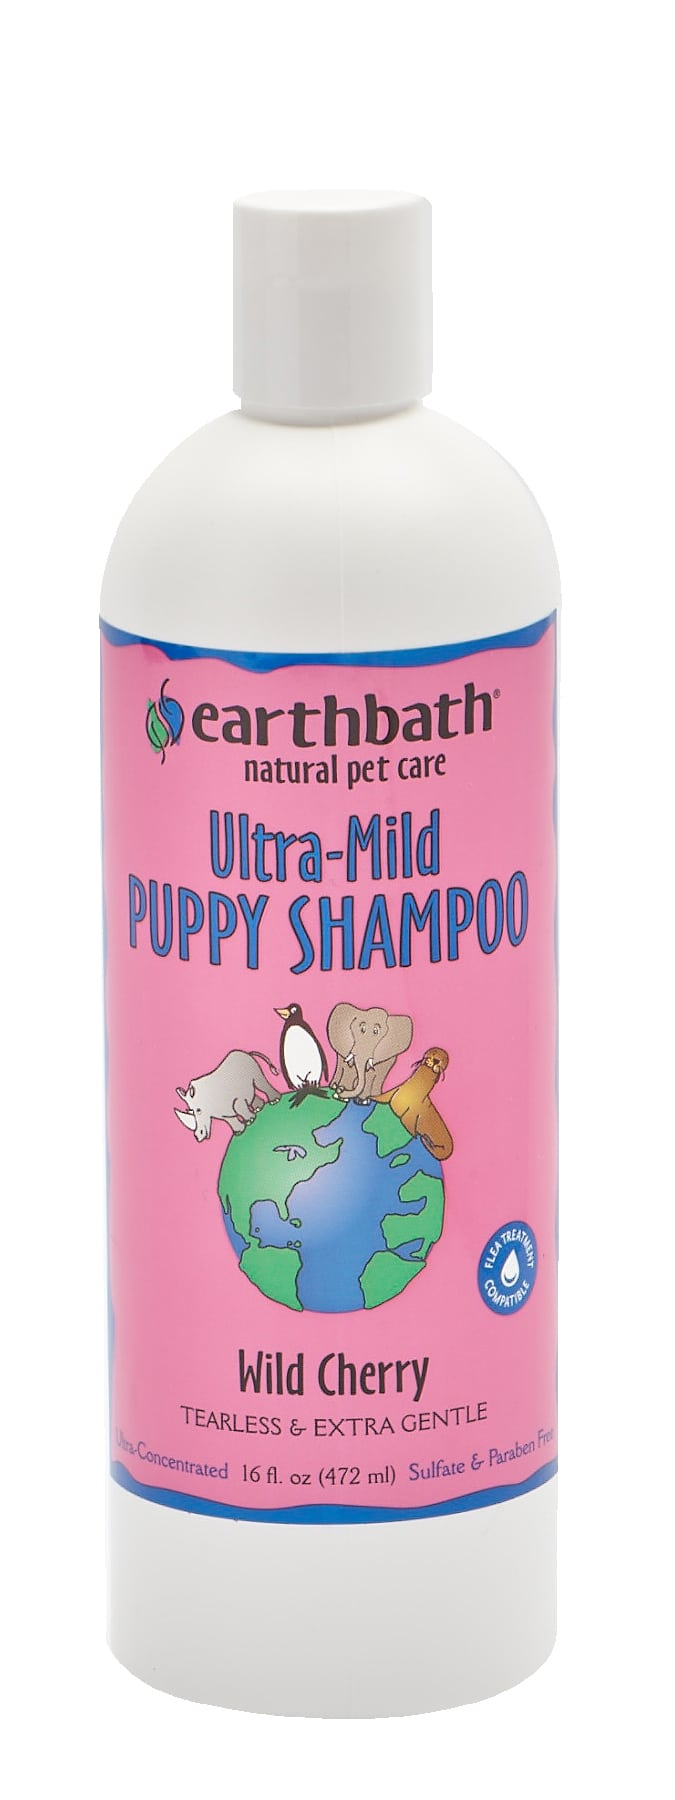 Earthbath 472ml Ultra-Mild Puppy Shampoo Wild Cherry